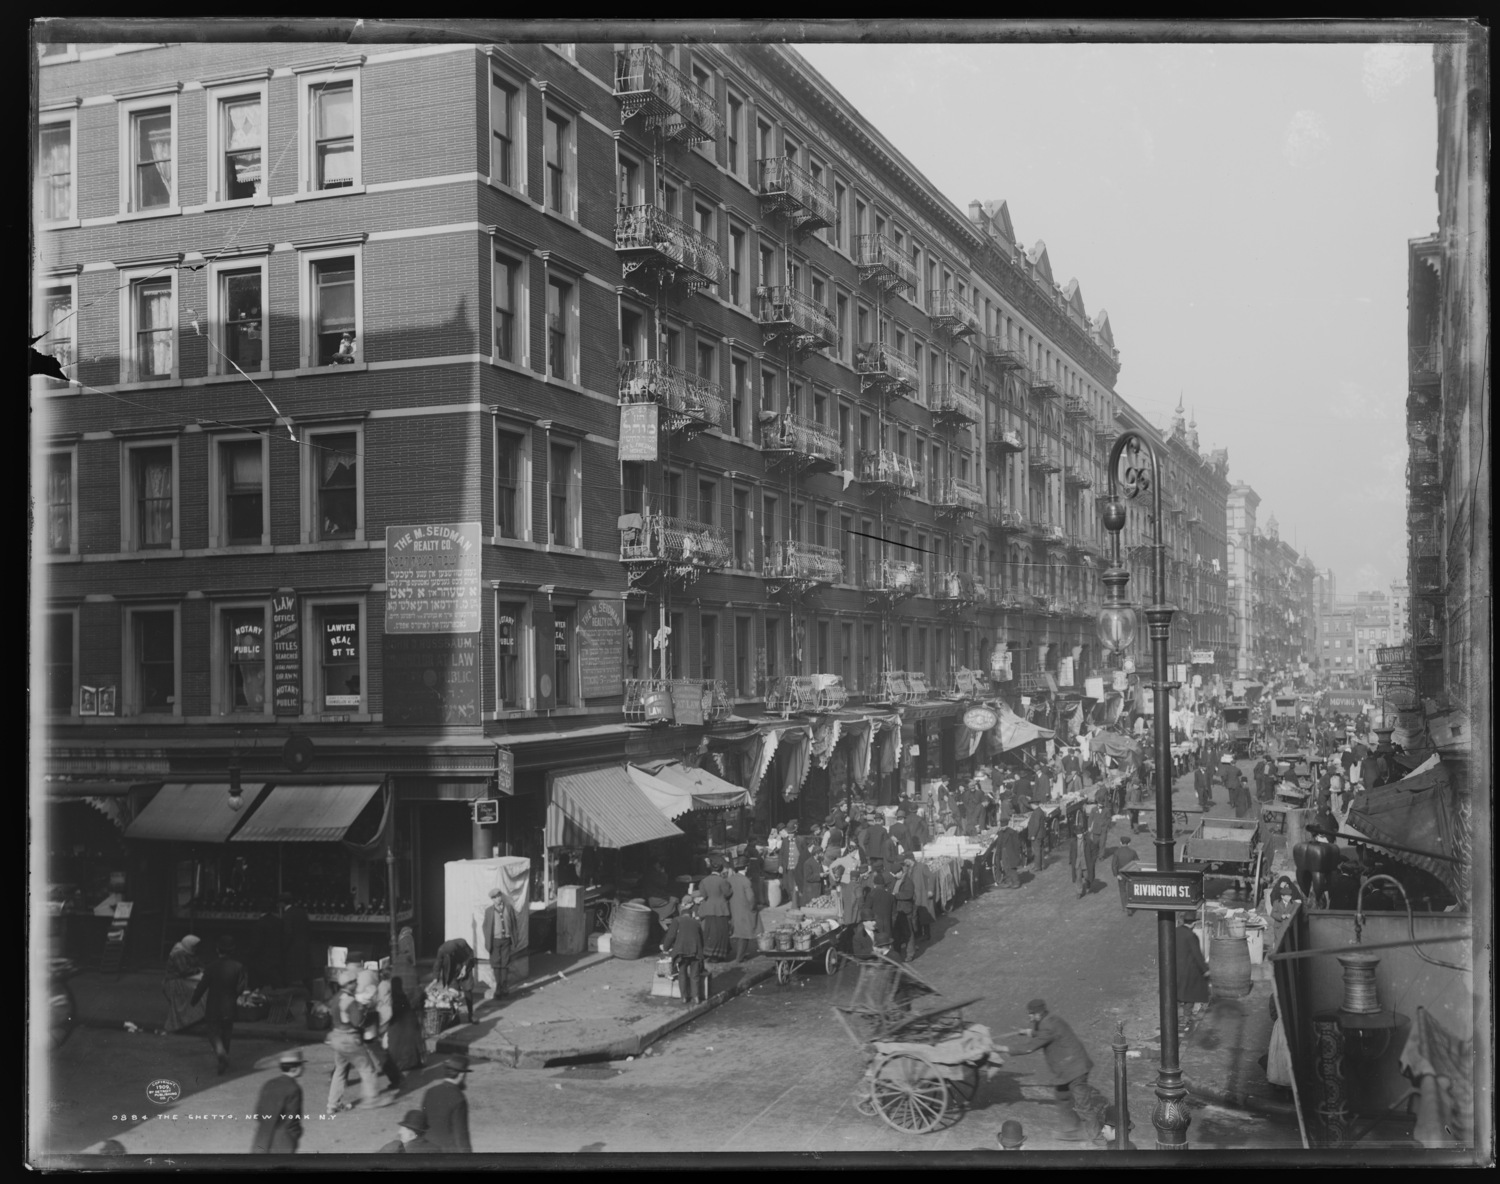 The Ghetto, New York, N.Y., 1909